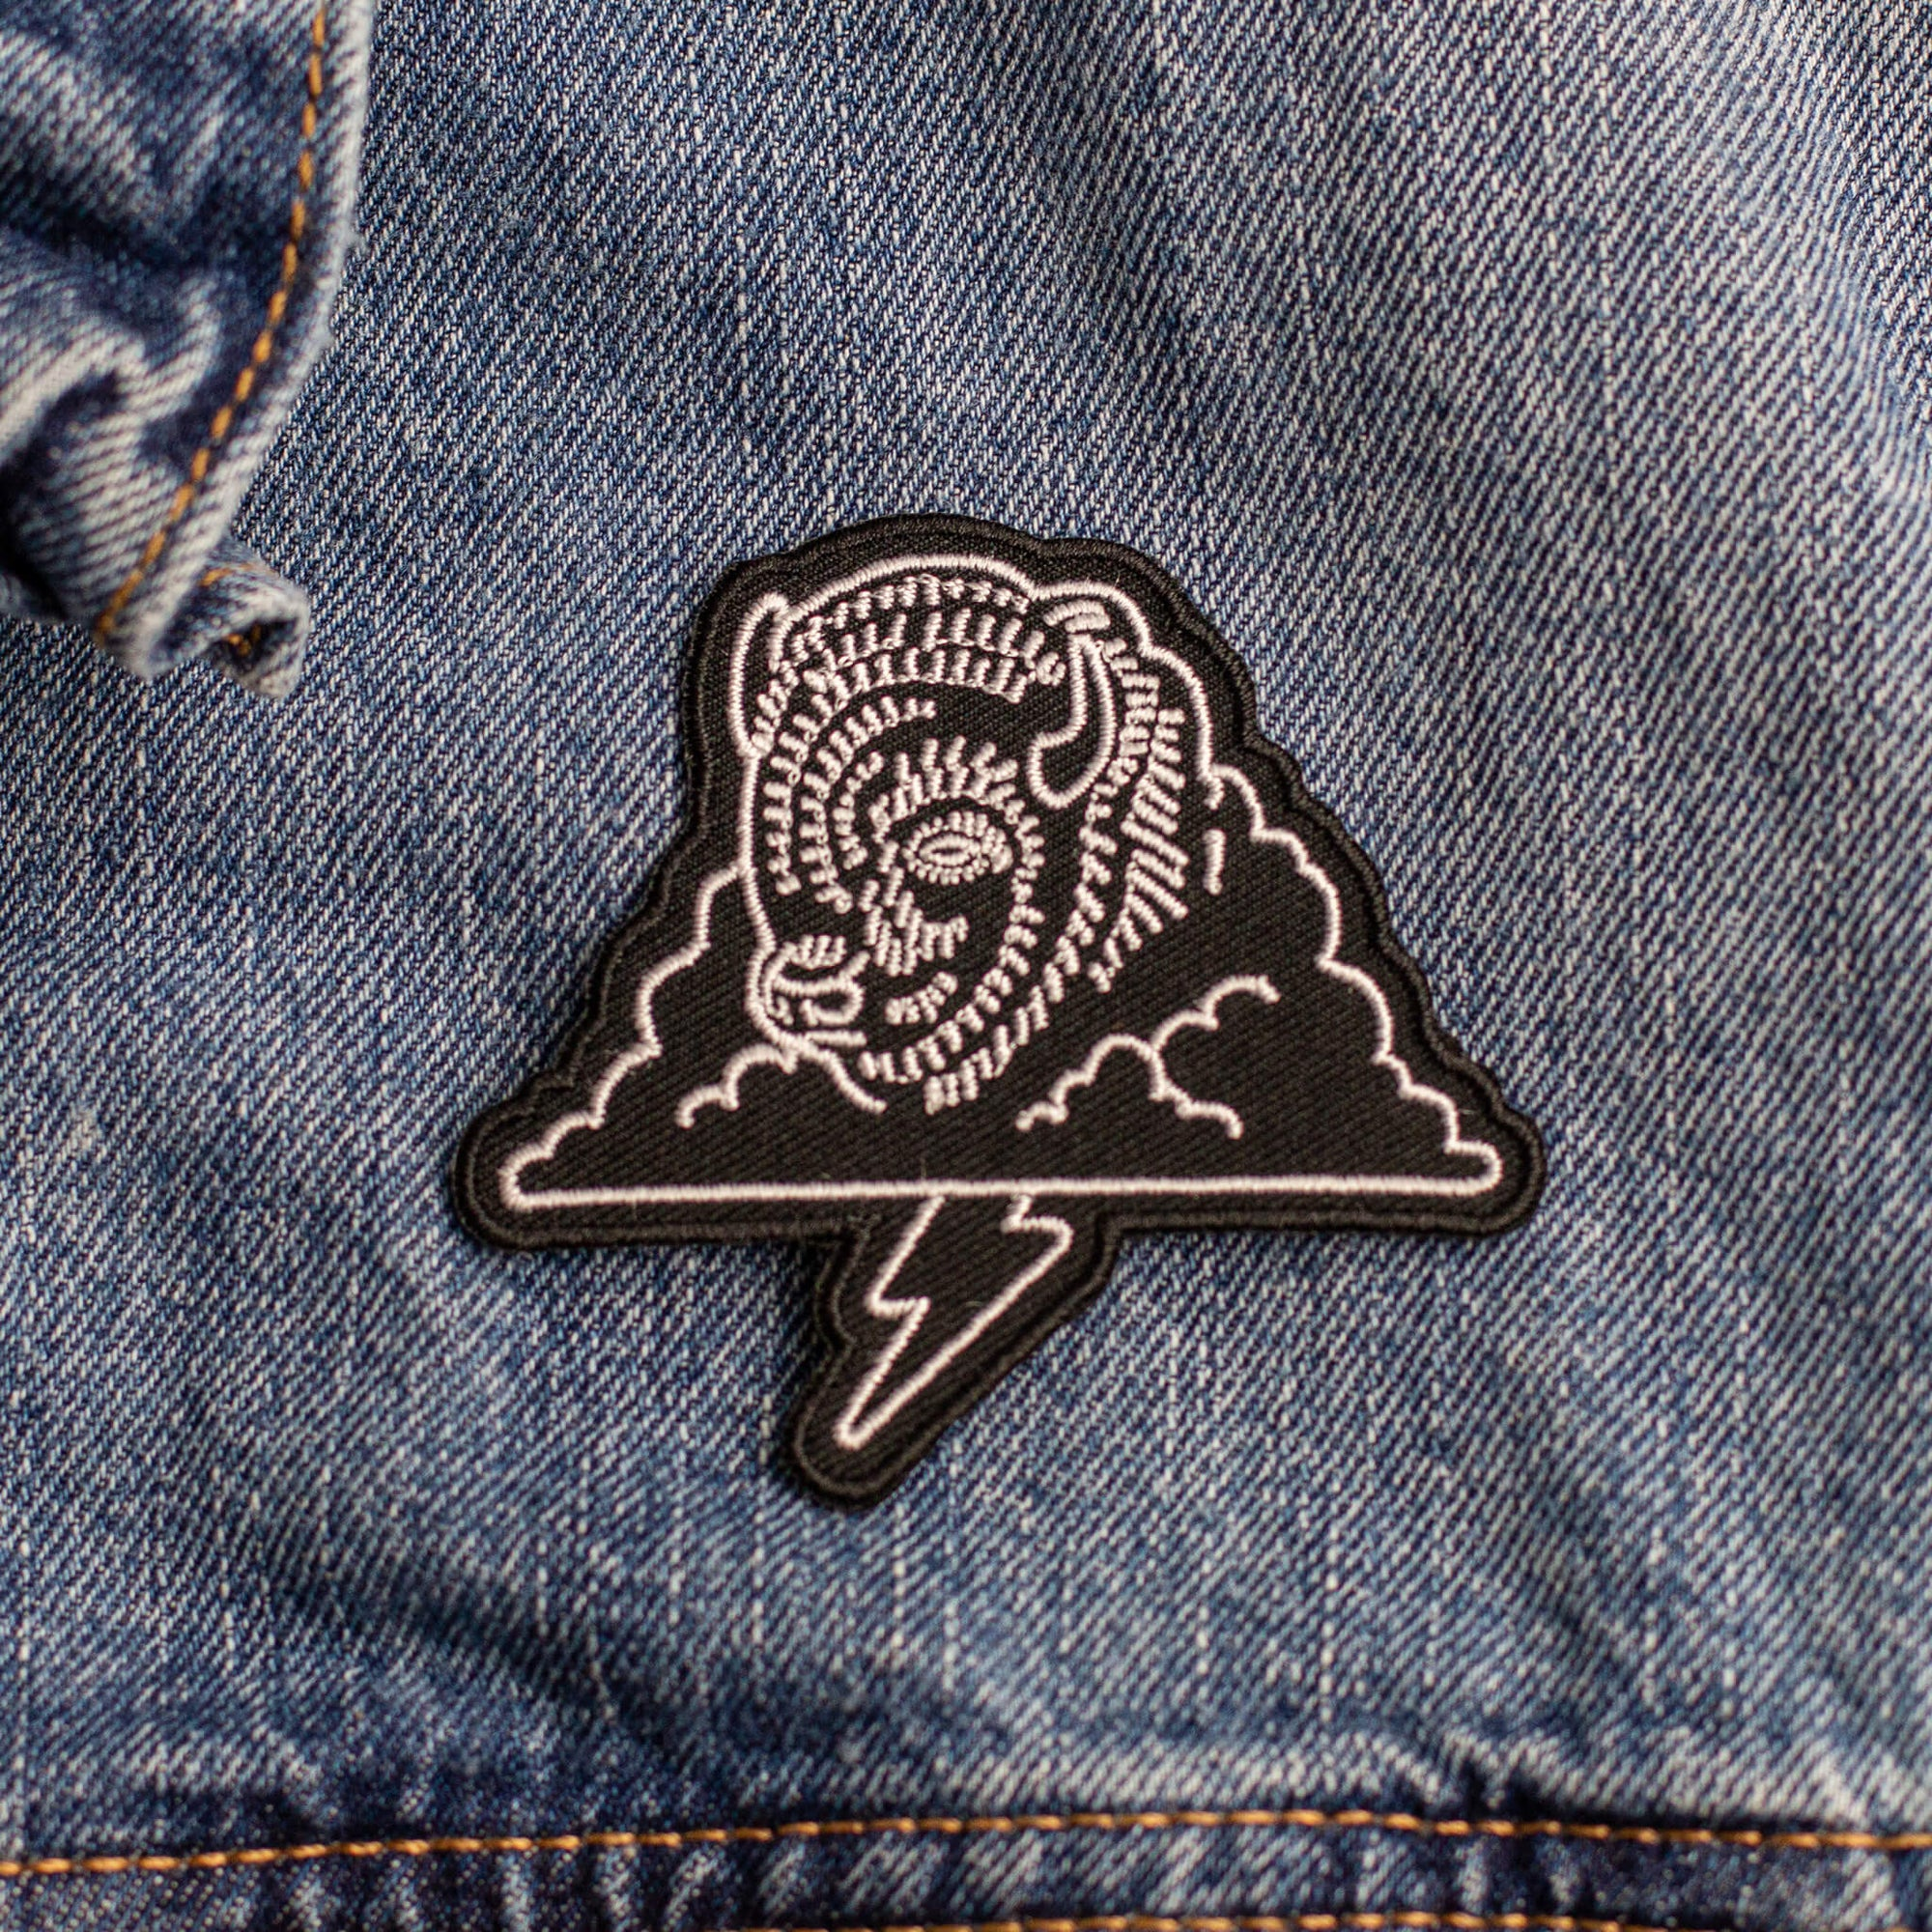 Bison Thunder - Embroidered Patch